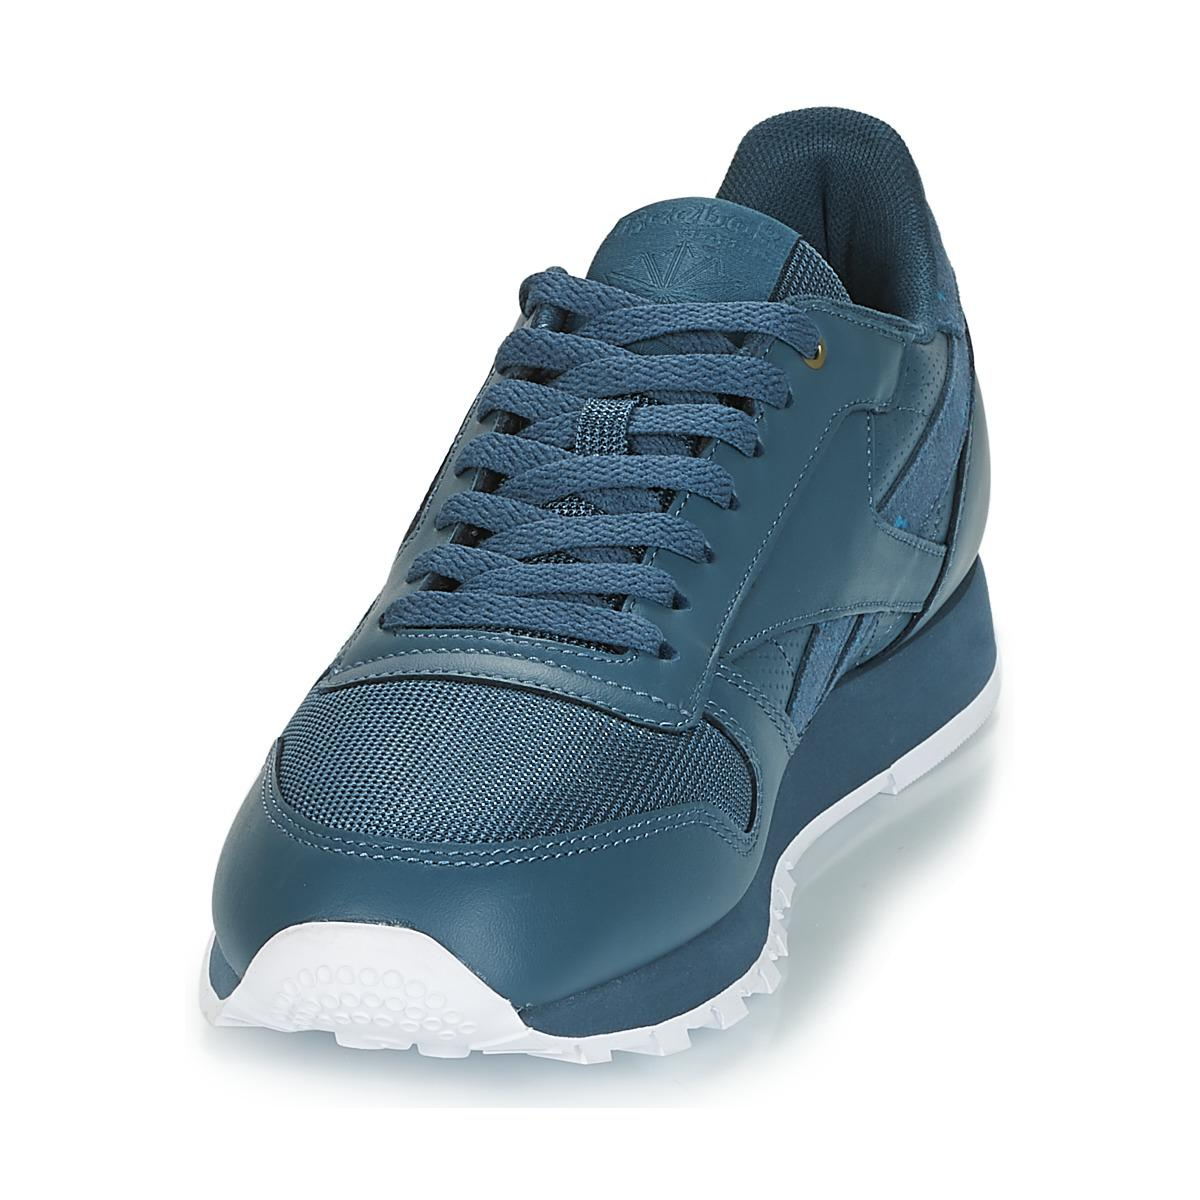 3a4101c8236 Reebok - Classic Leather Men s Shoes (trainers) In Blue for Men - Lyst.  View fullscreen